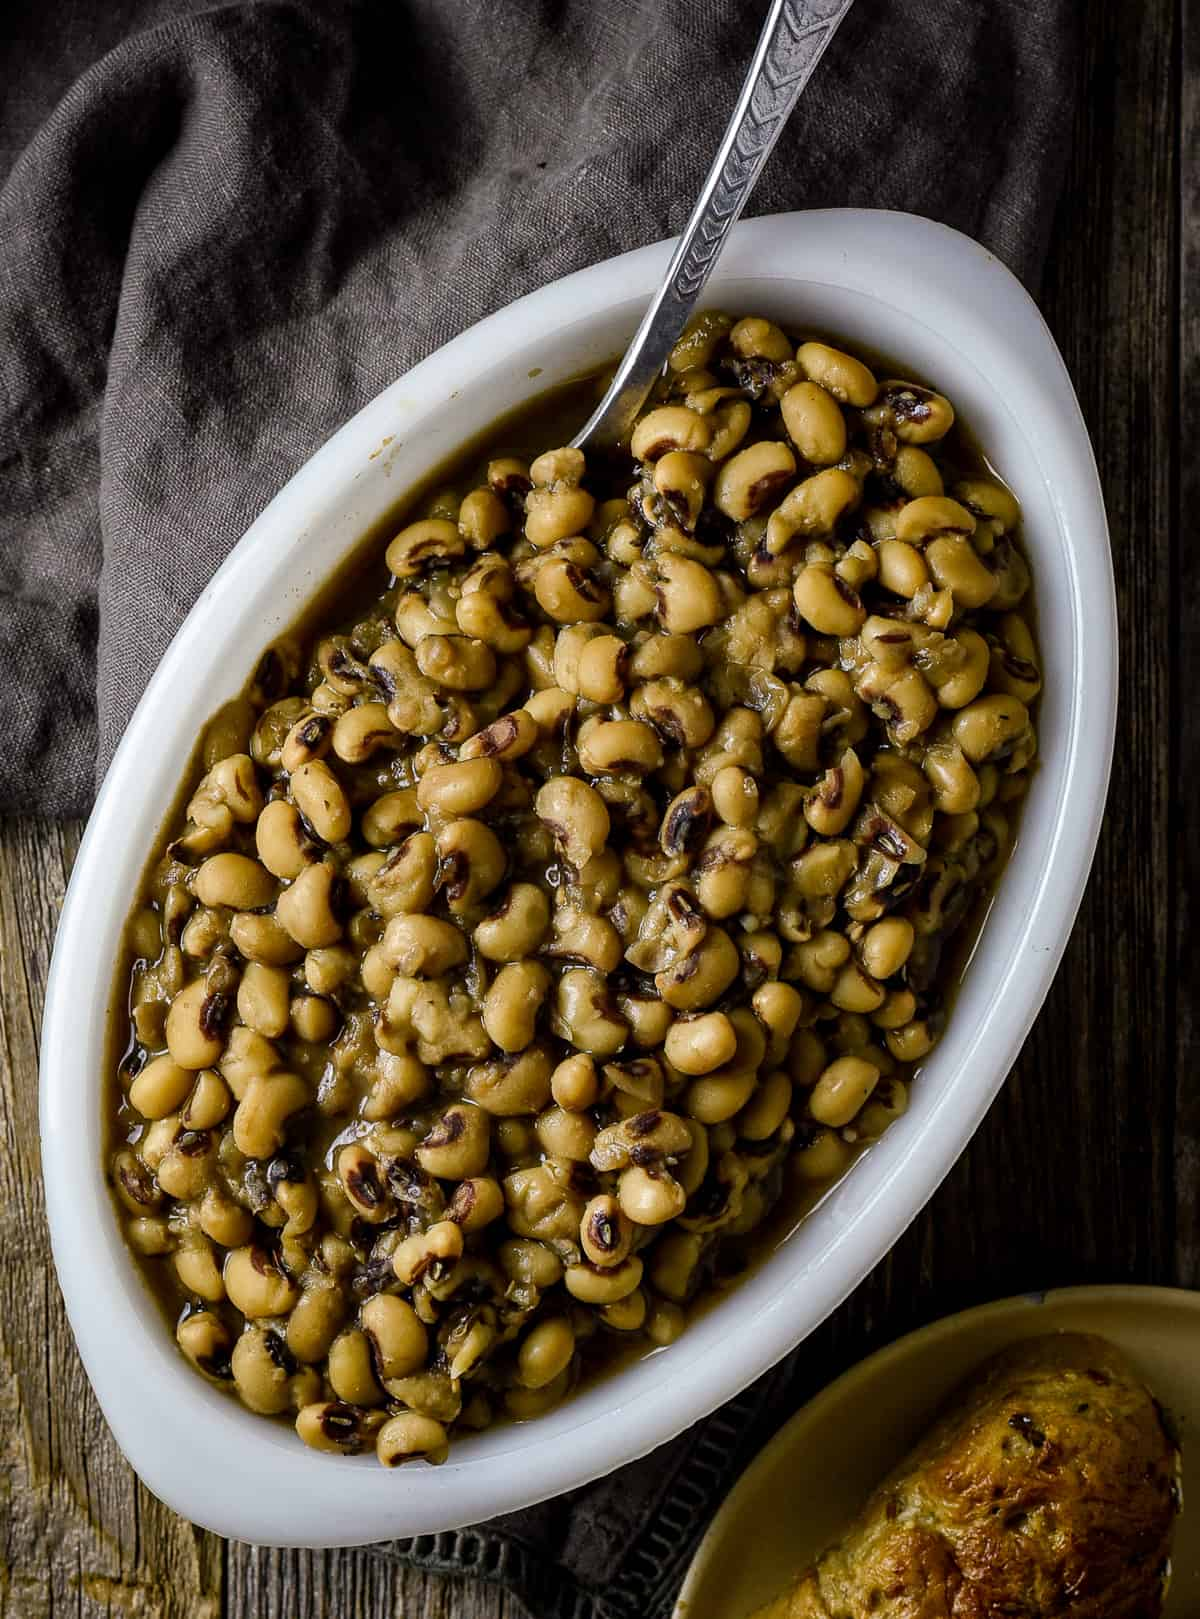 Black-eyed peas in serving dish.